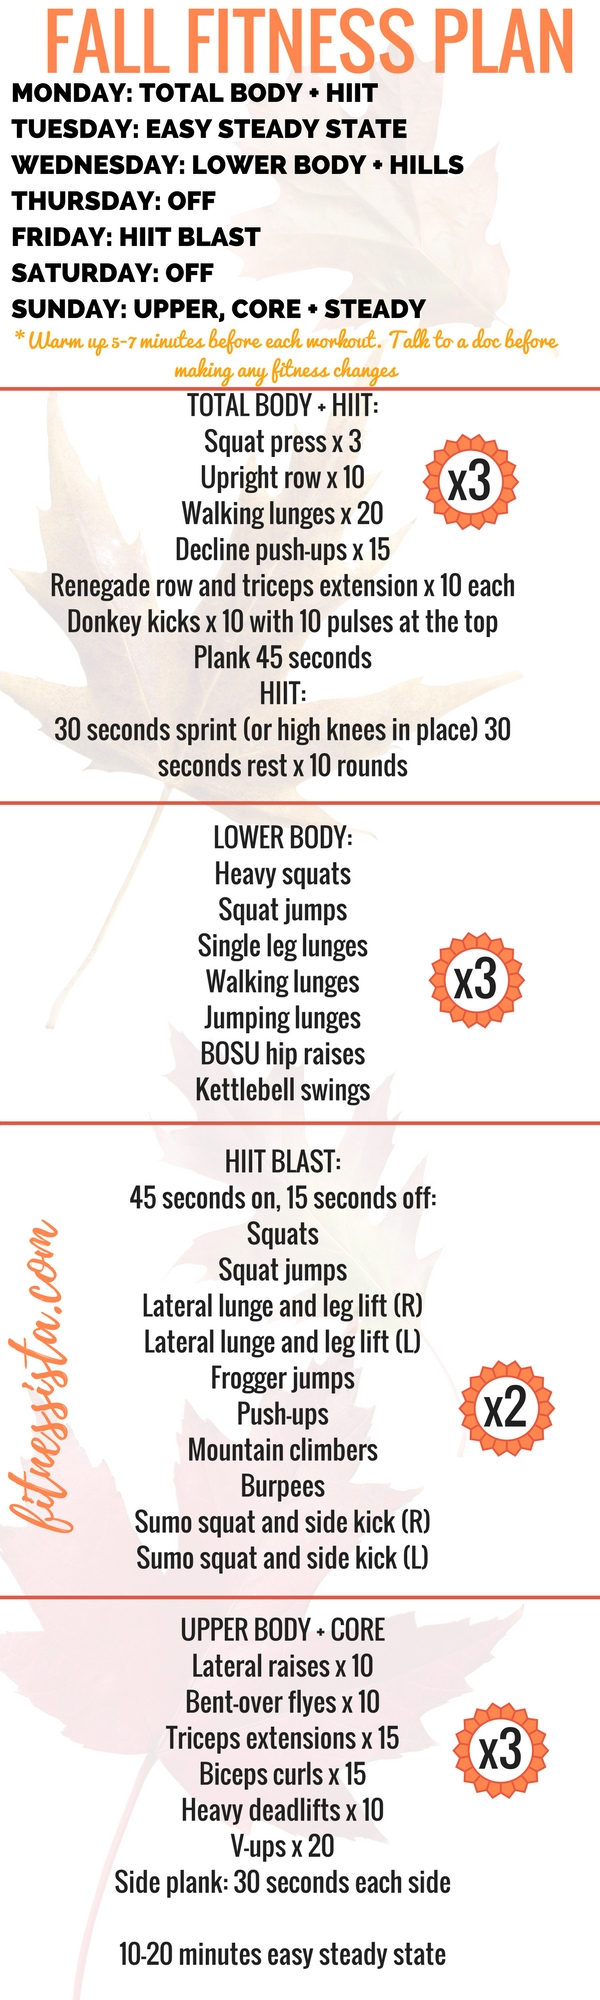 free fall fitness plan at home workout plan